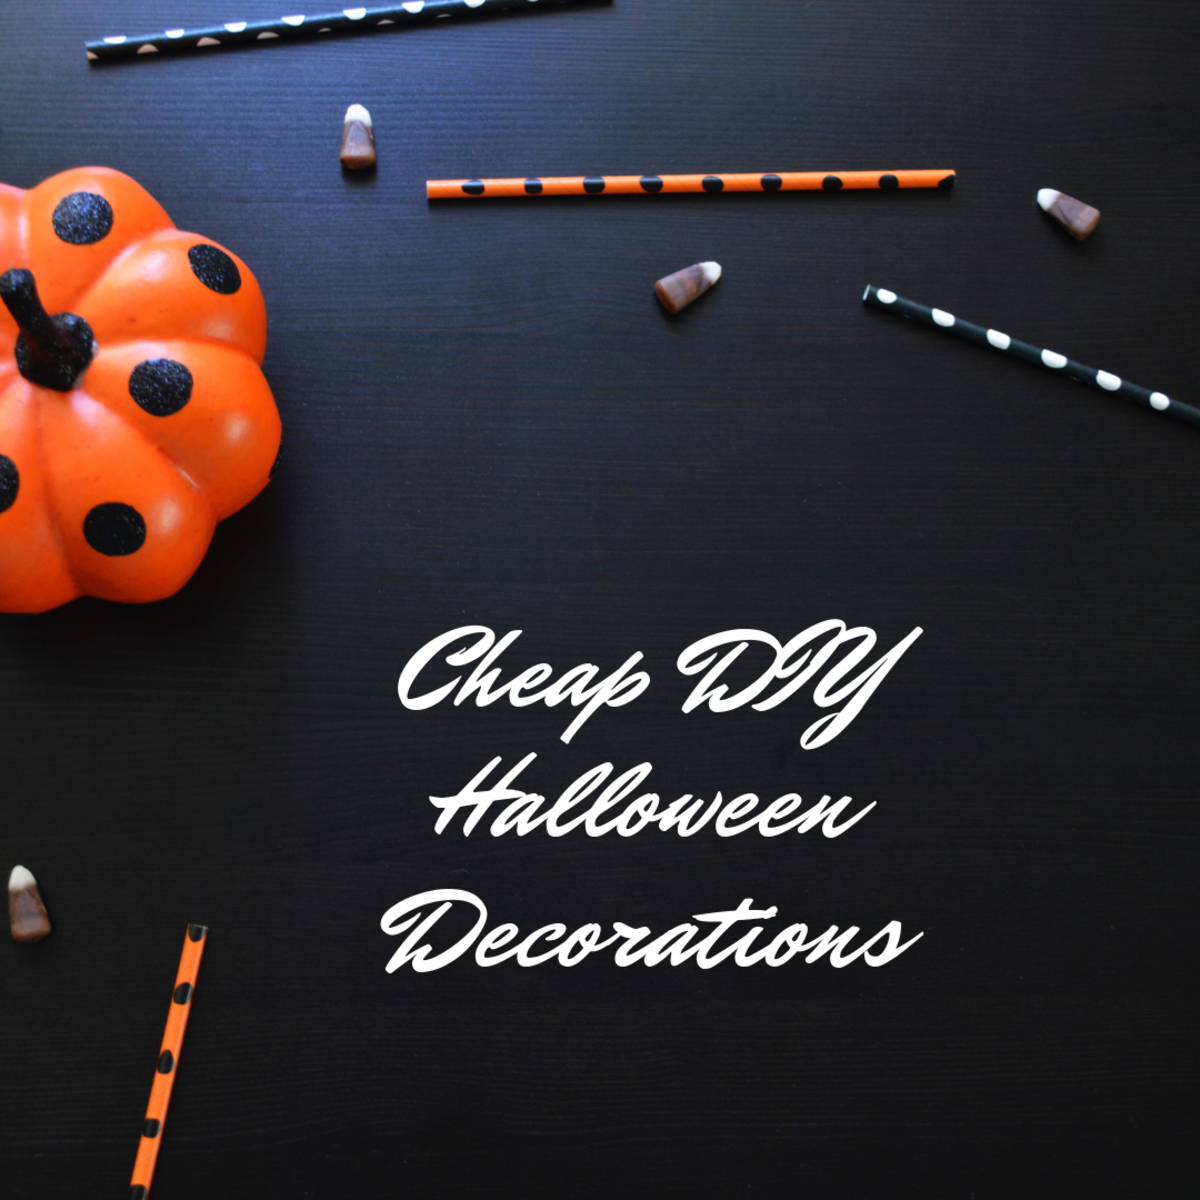 9 Cheap DIY Halloween Decorations